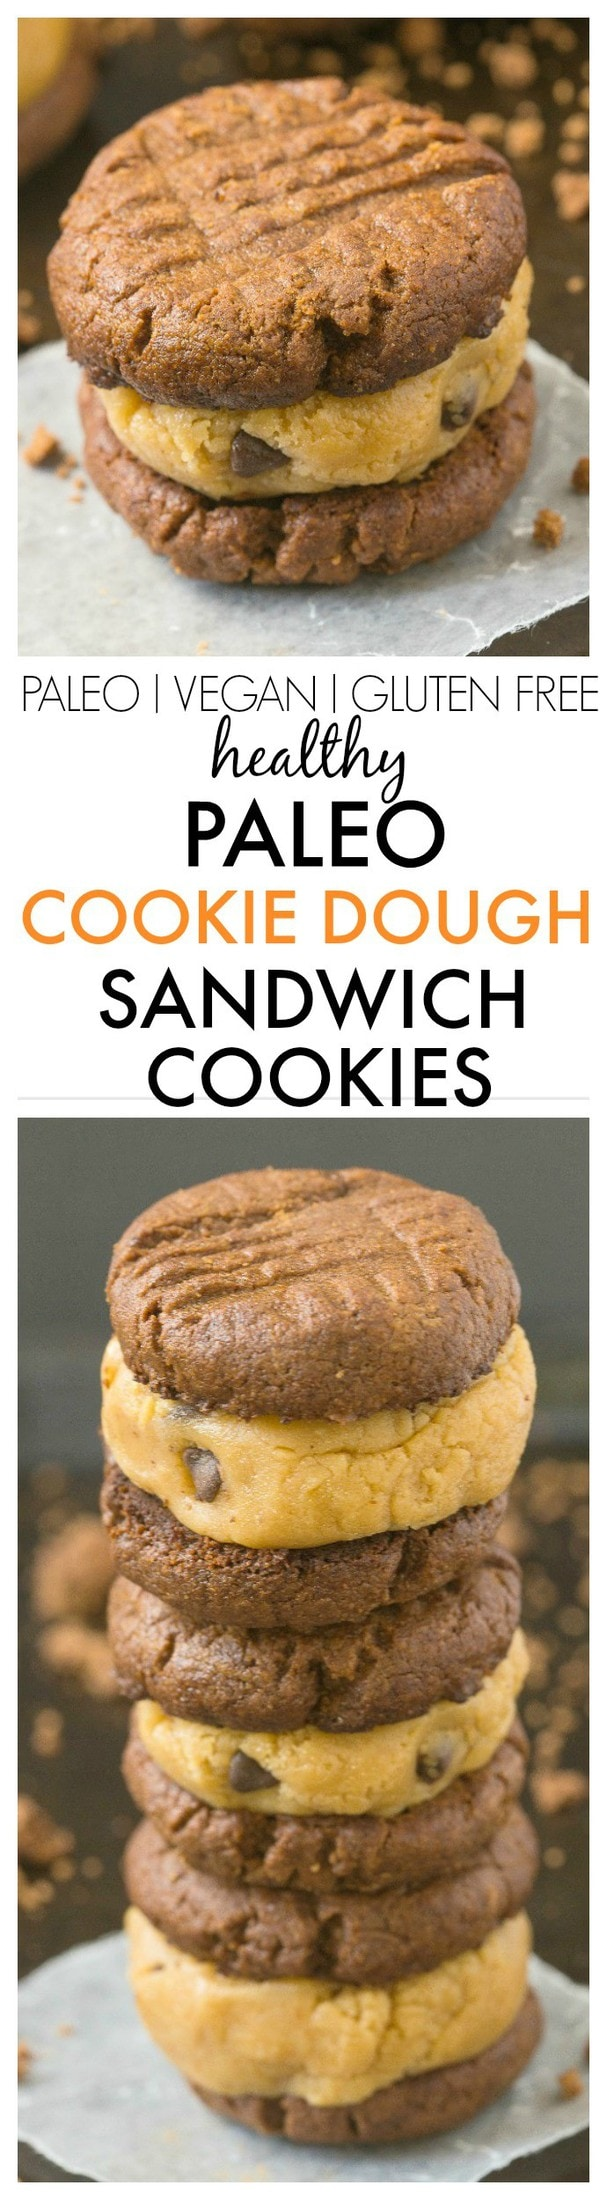 Healthy Paleo Cookie Dough Sandwich Cookies- Delicious, creamy cookie dough sandwiched between two grain free cookies- NO butter, oil, grains or white sugar at all! {vegan, gluten free, paleo recipe}- thebigmansworld.com